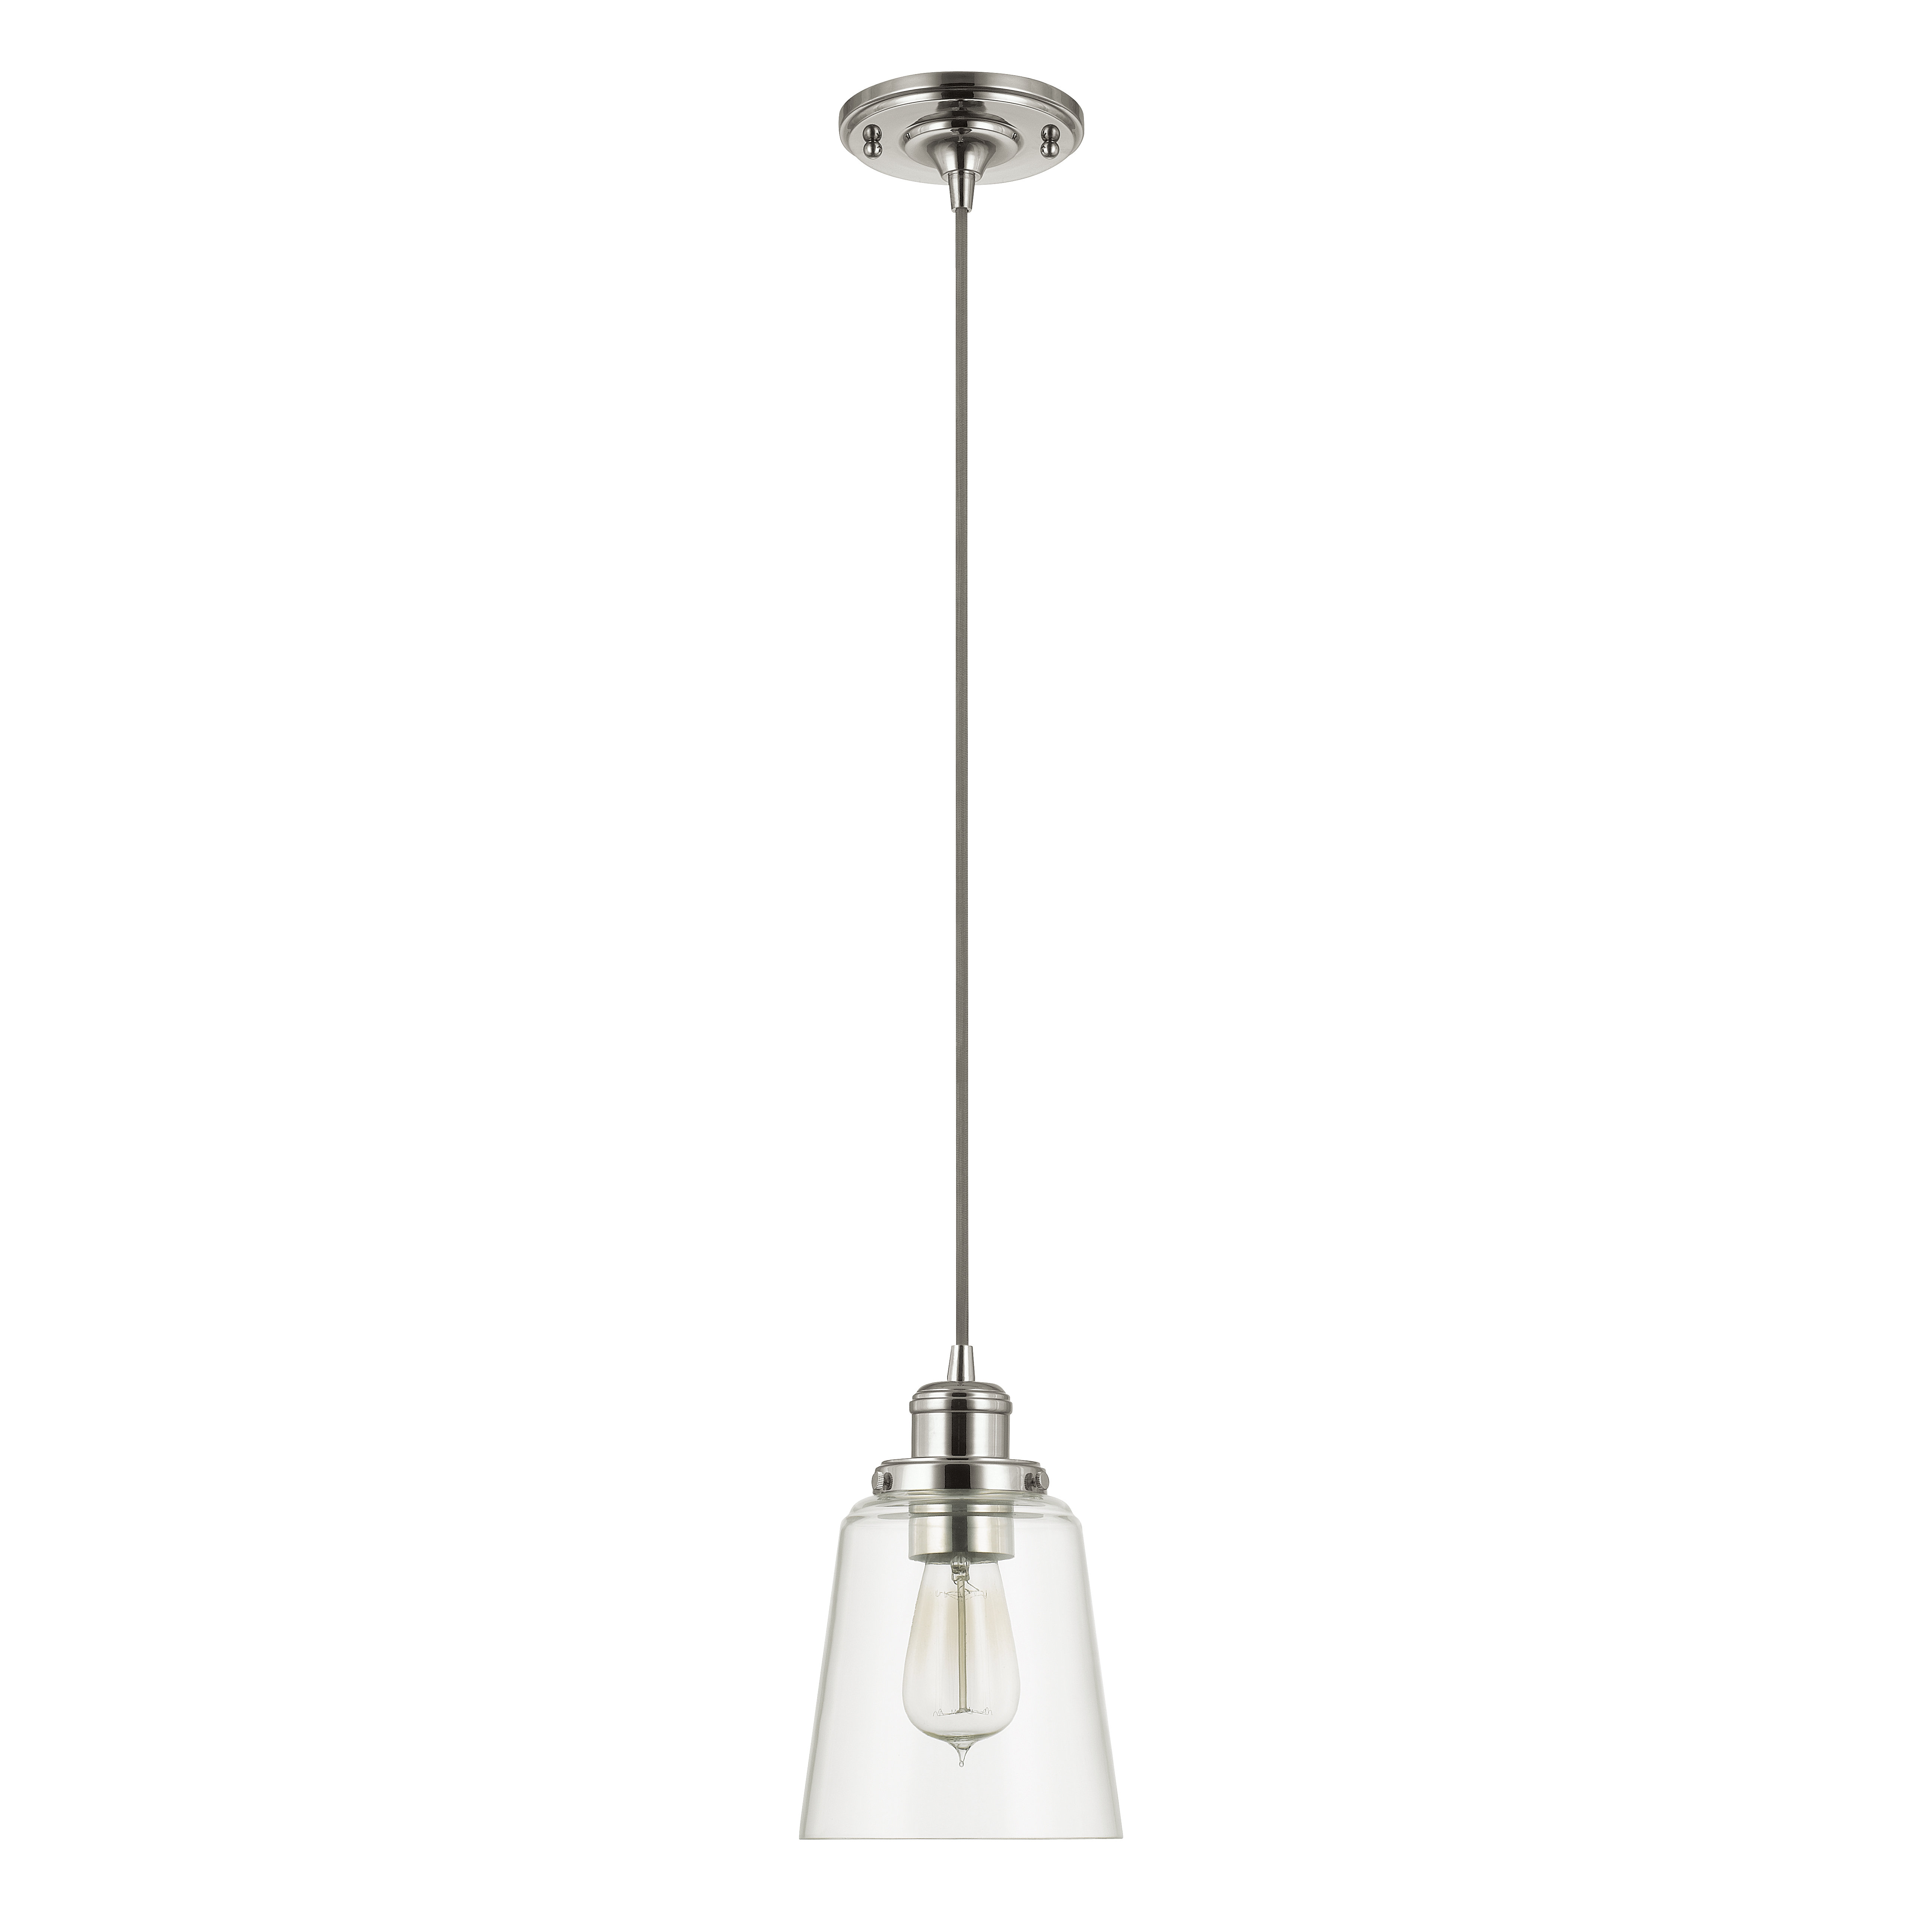 1 Light Single Bell Pendant With Regard To Fresno Dome 1 Light Bell Pendants (Gallery 16 of 30)